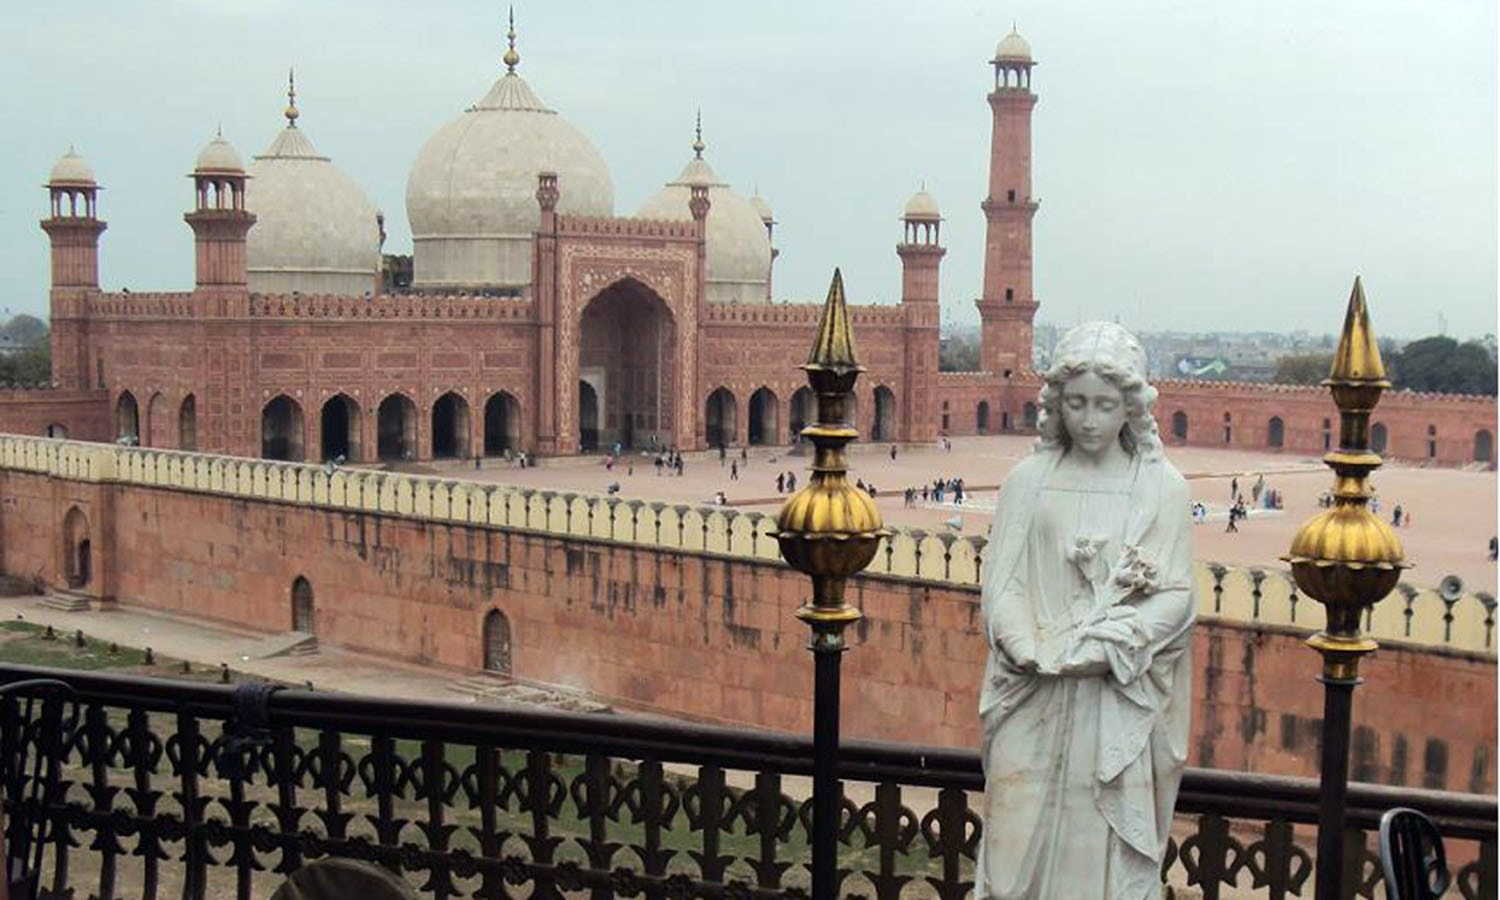 Balcony of a café behind which is Lahore's historic Badshahi Mosque. (Pic: I. Hussain)